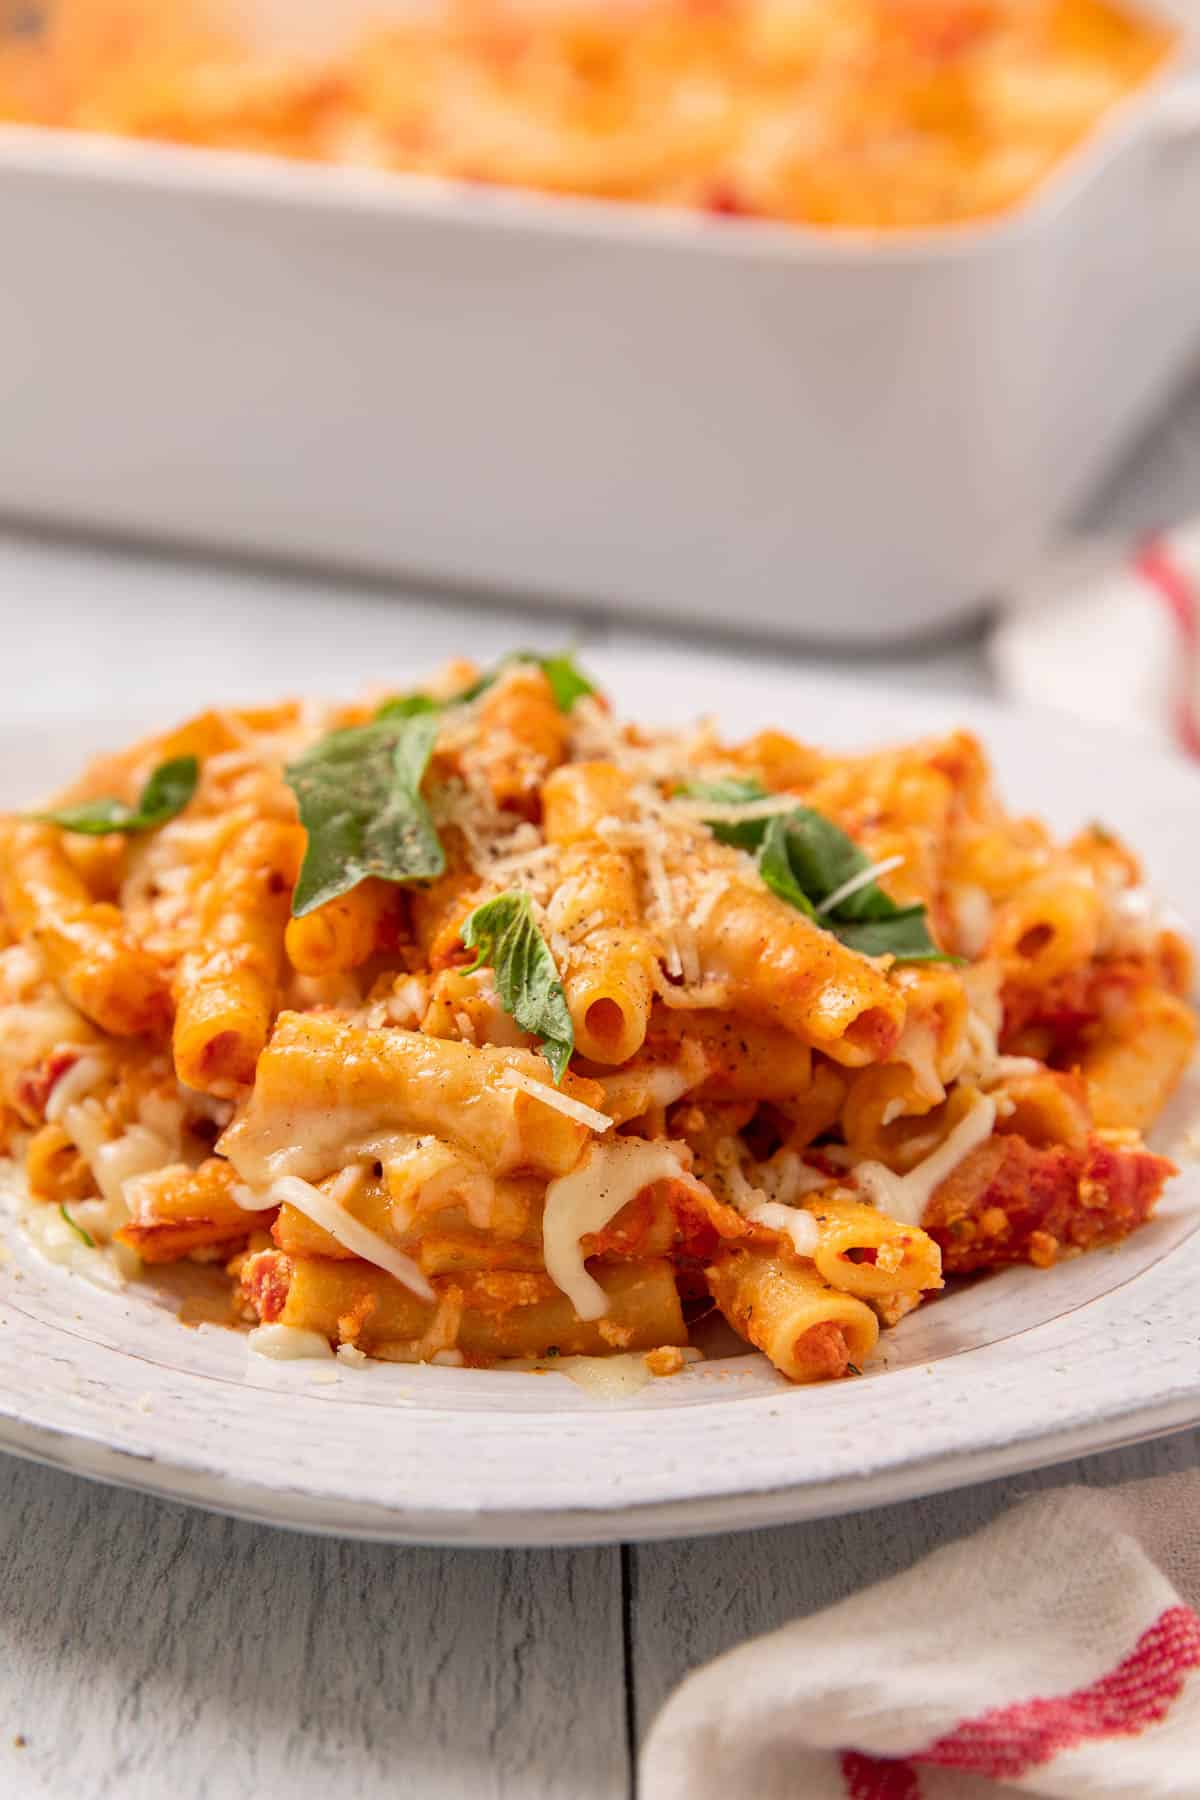 a plate of baked pasta with red sauce